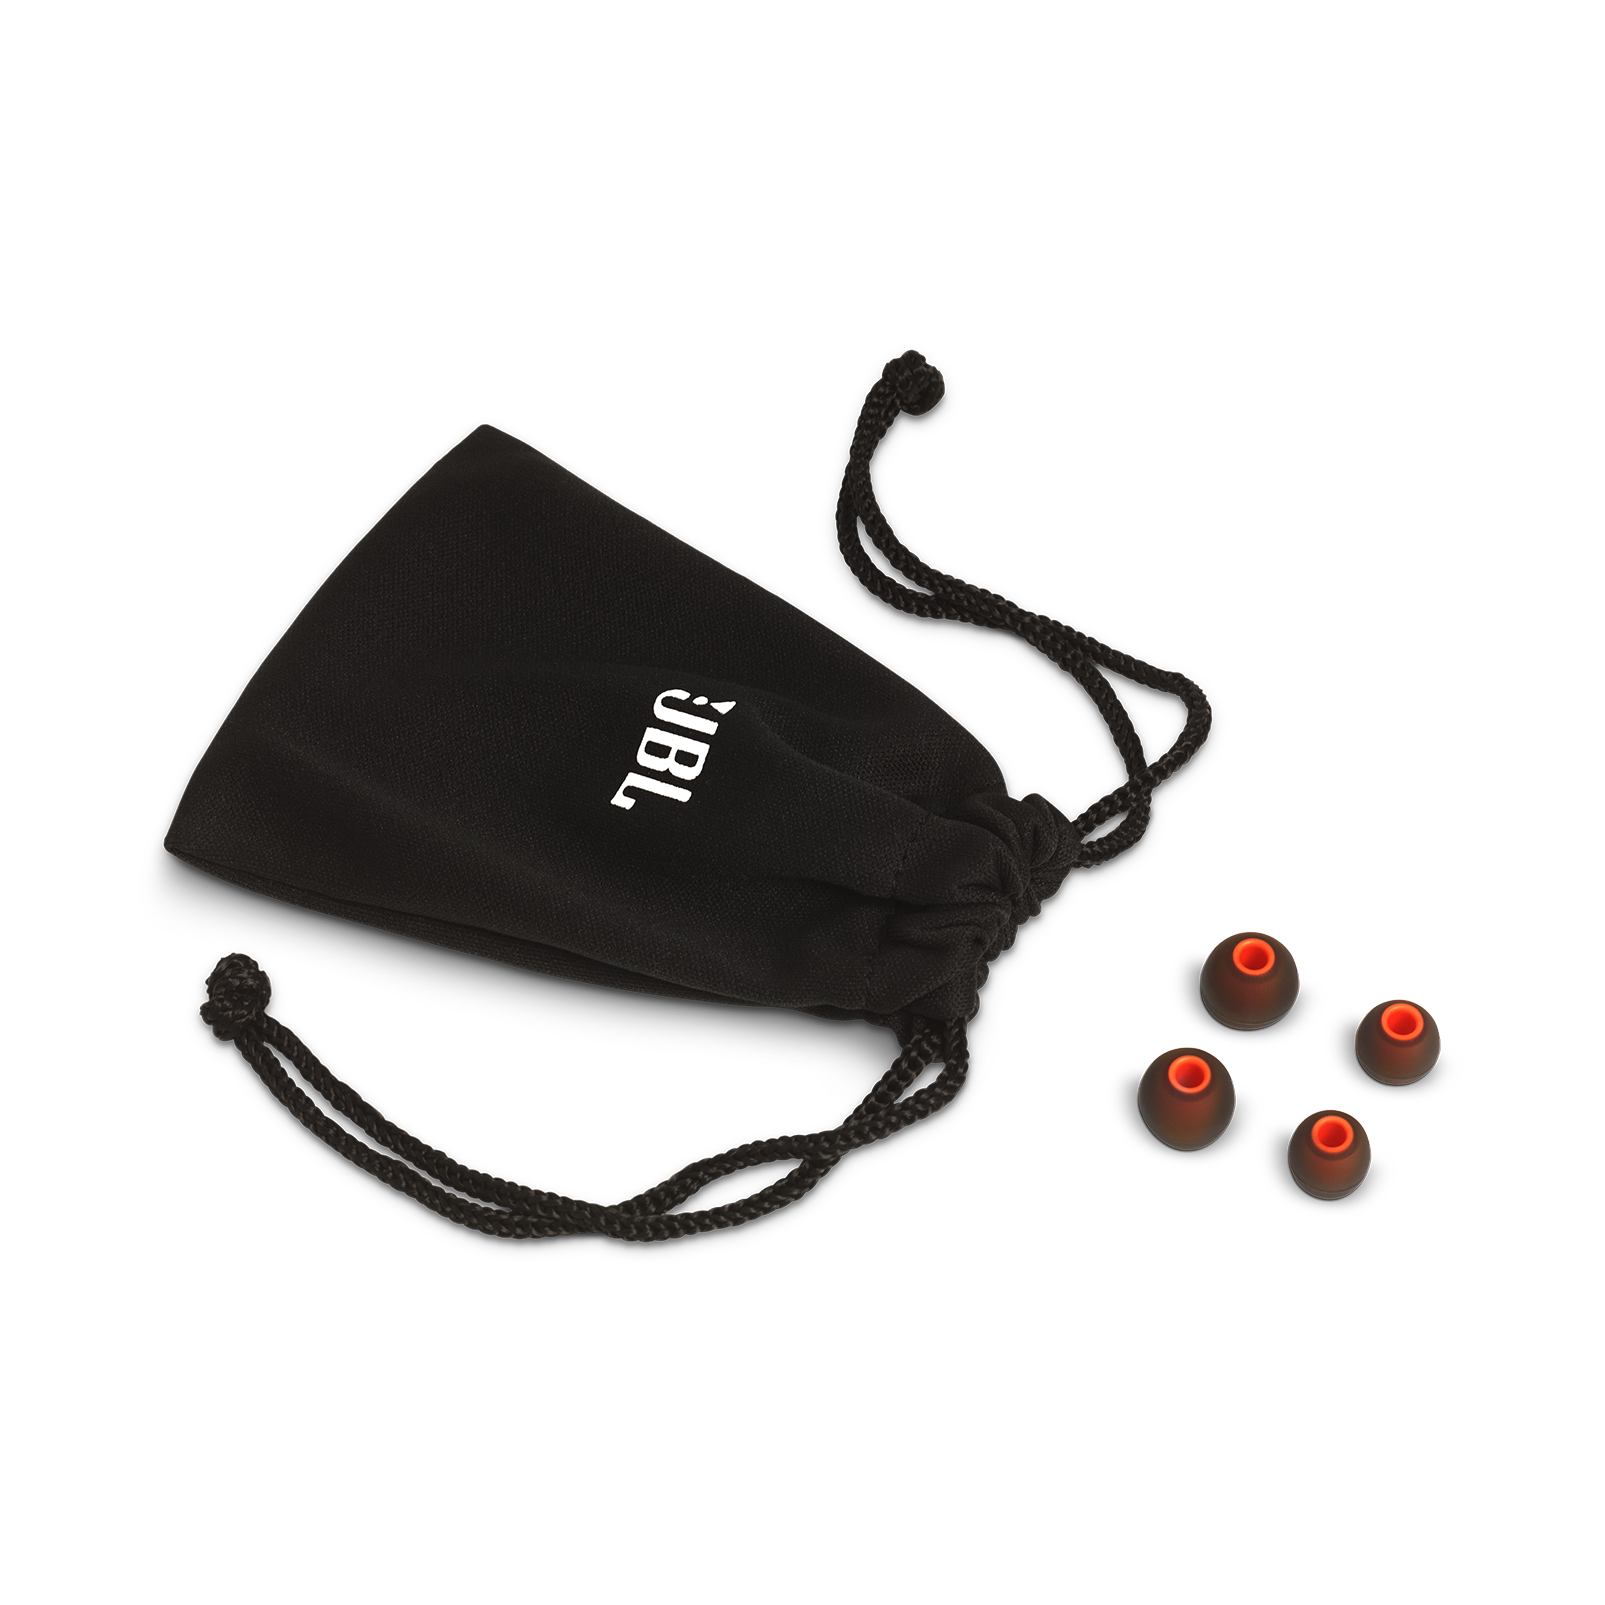 JBL TUNE 210 - Black - In-ear headphones - Detailshot 5